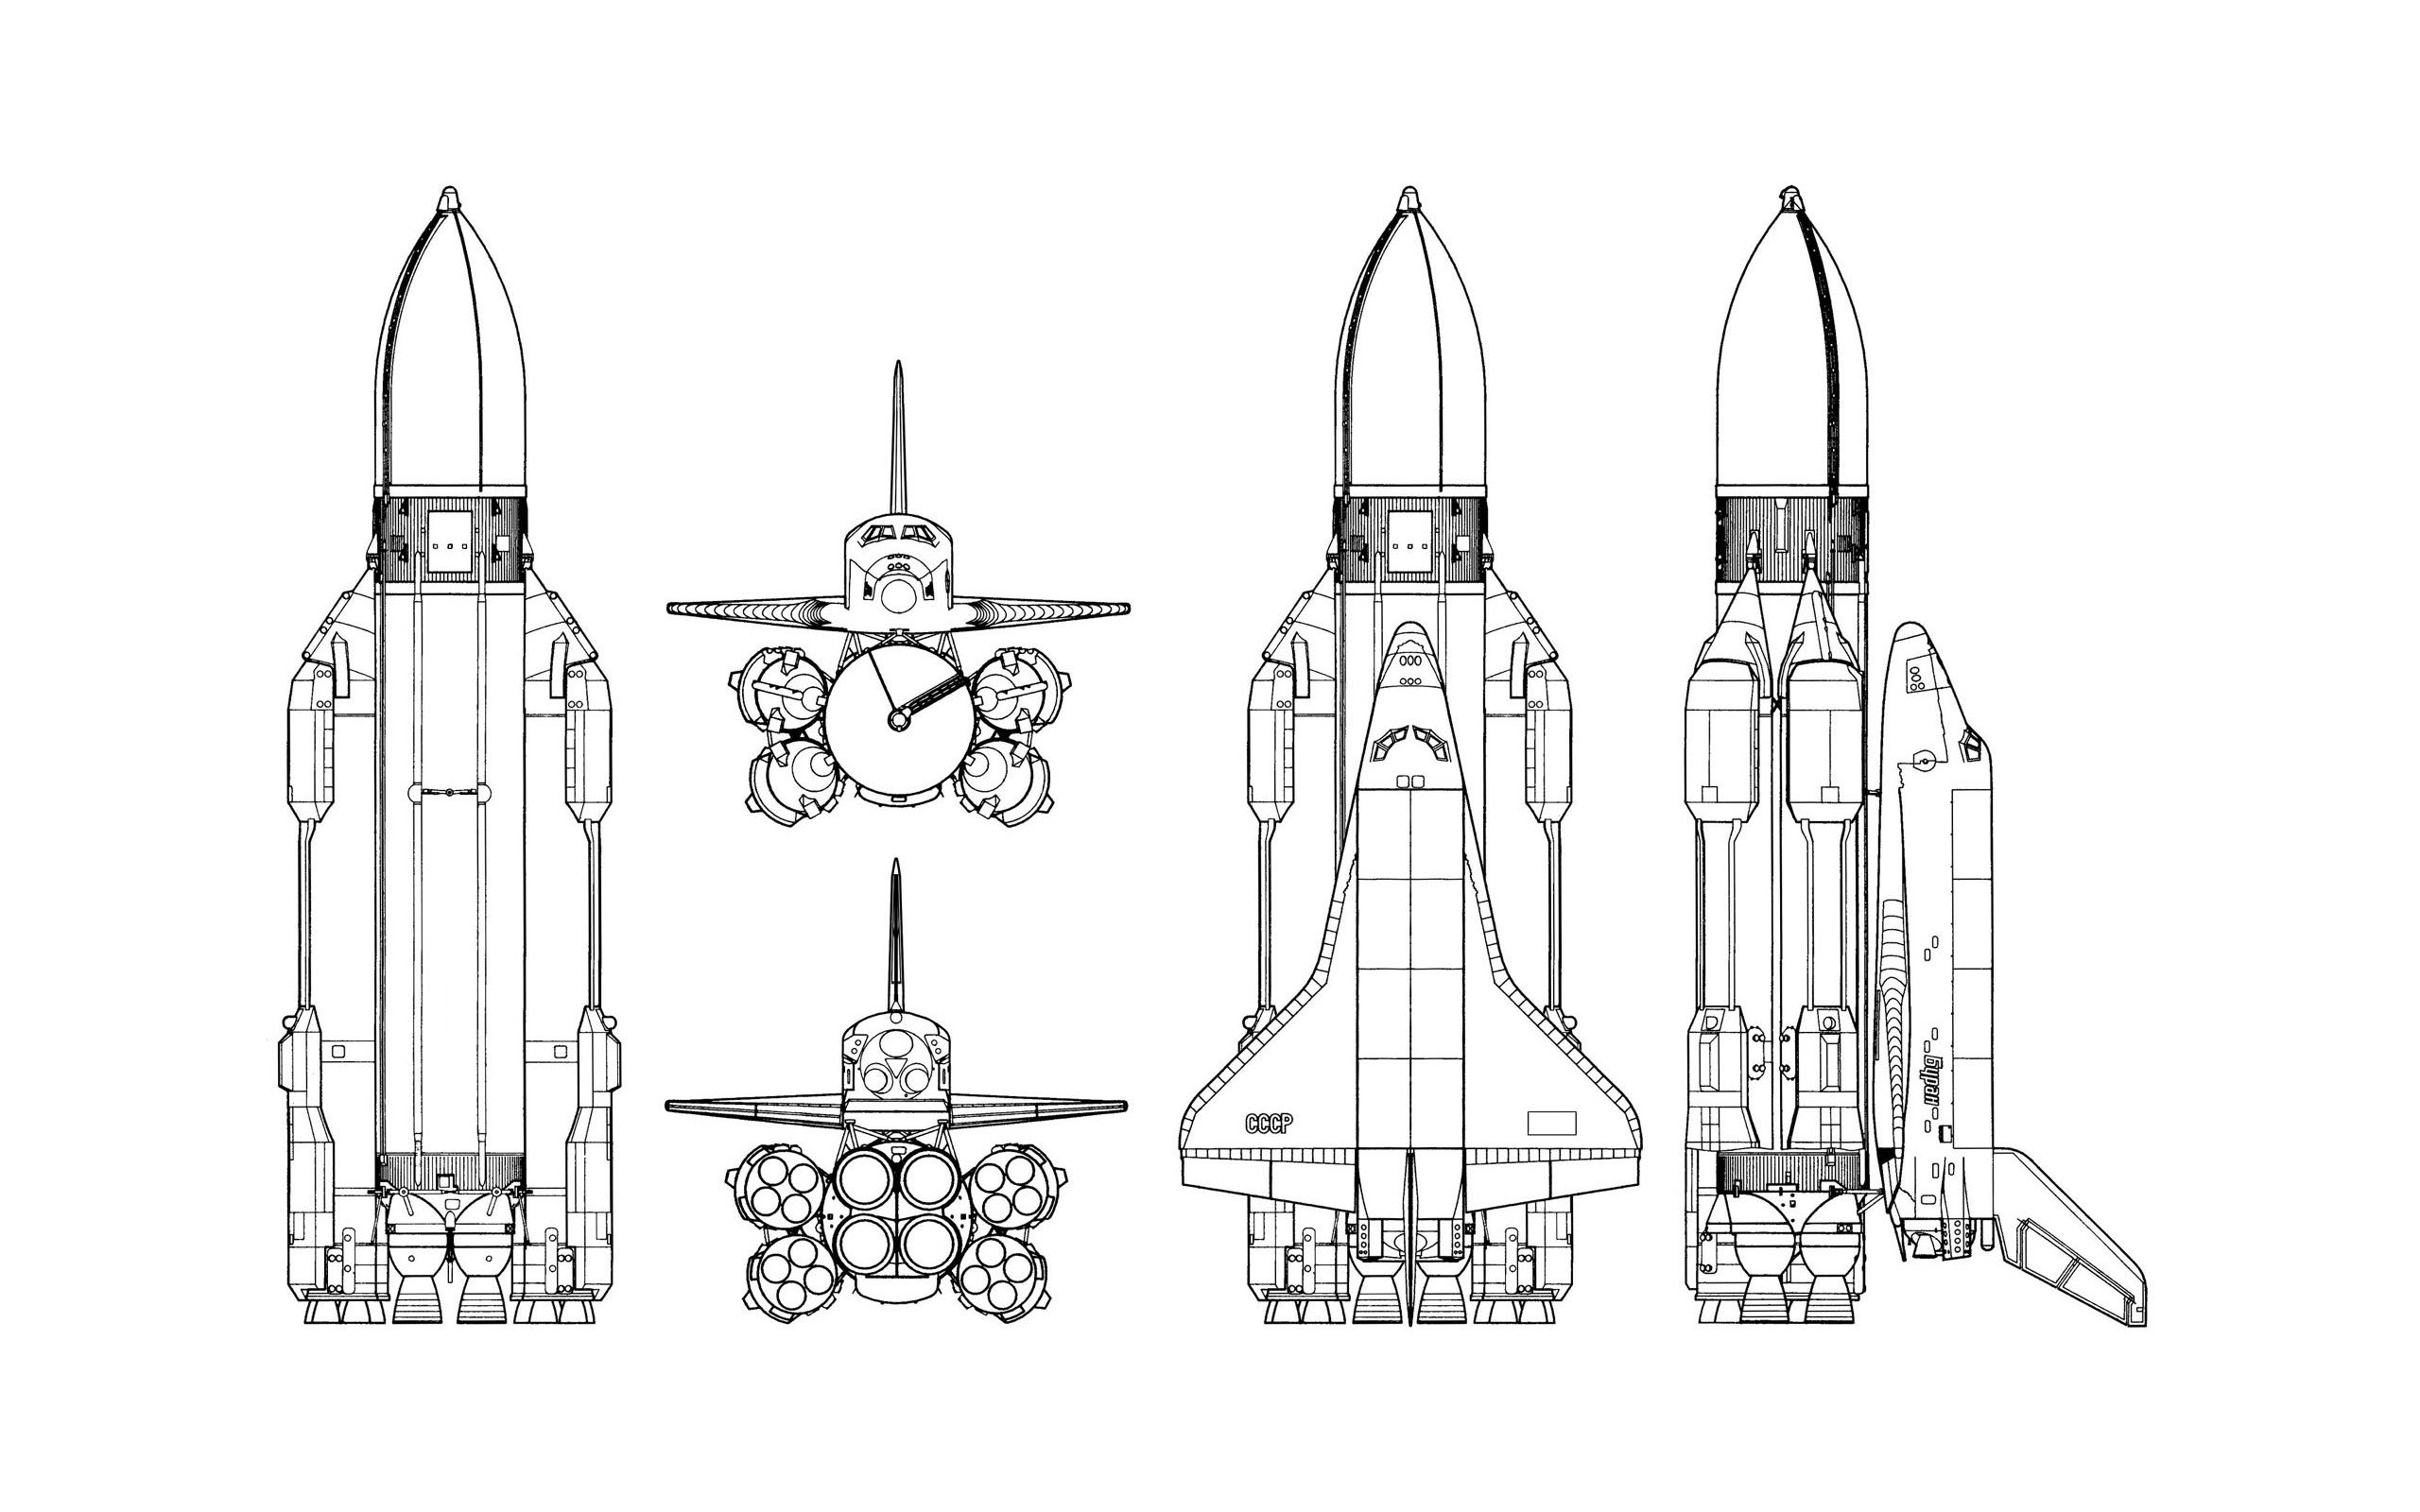 Space Shuttle Ussr Rockets Simple Background Schematic